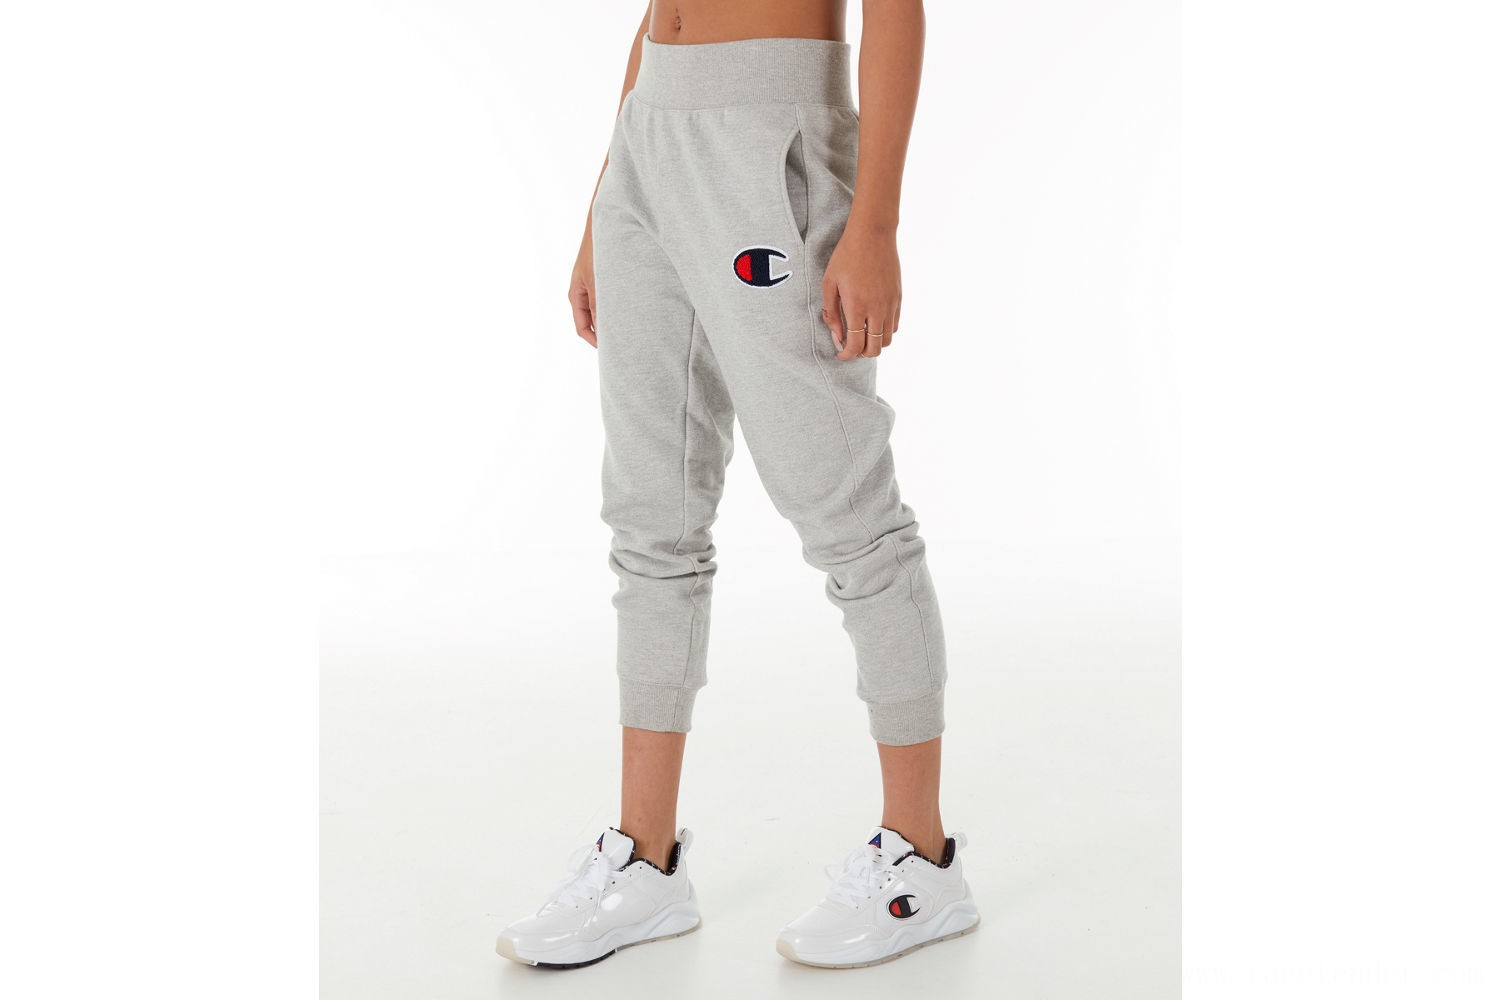 Champion Women's Reverse Weave Chenille Jogger Sweatpants - Oxford Grey